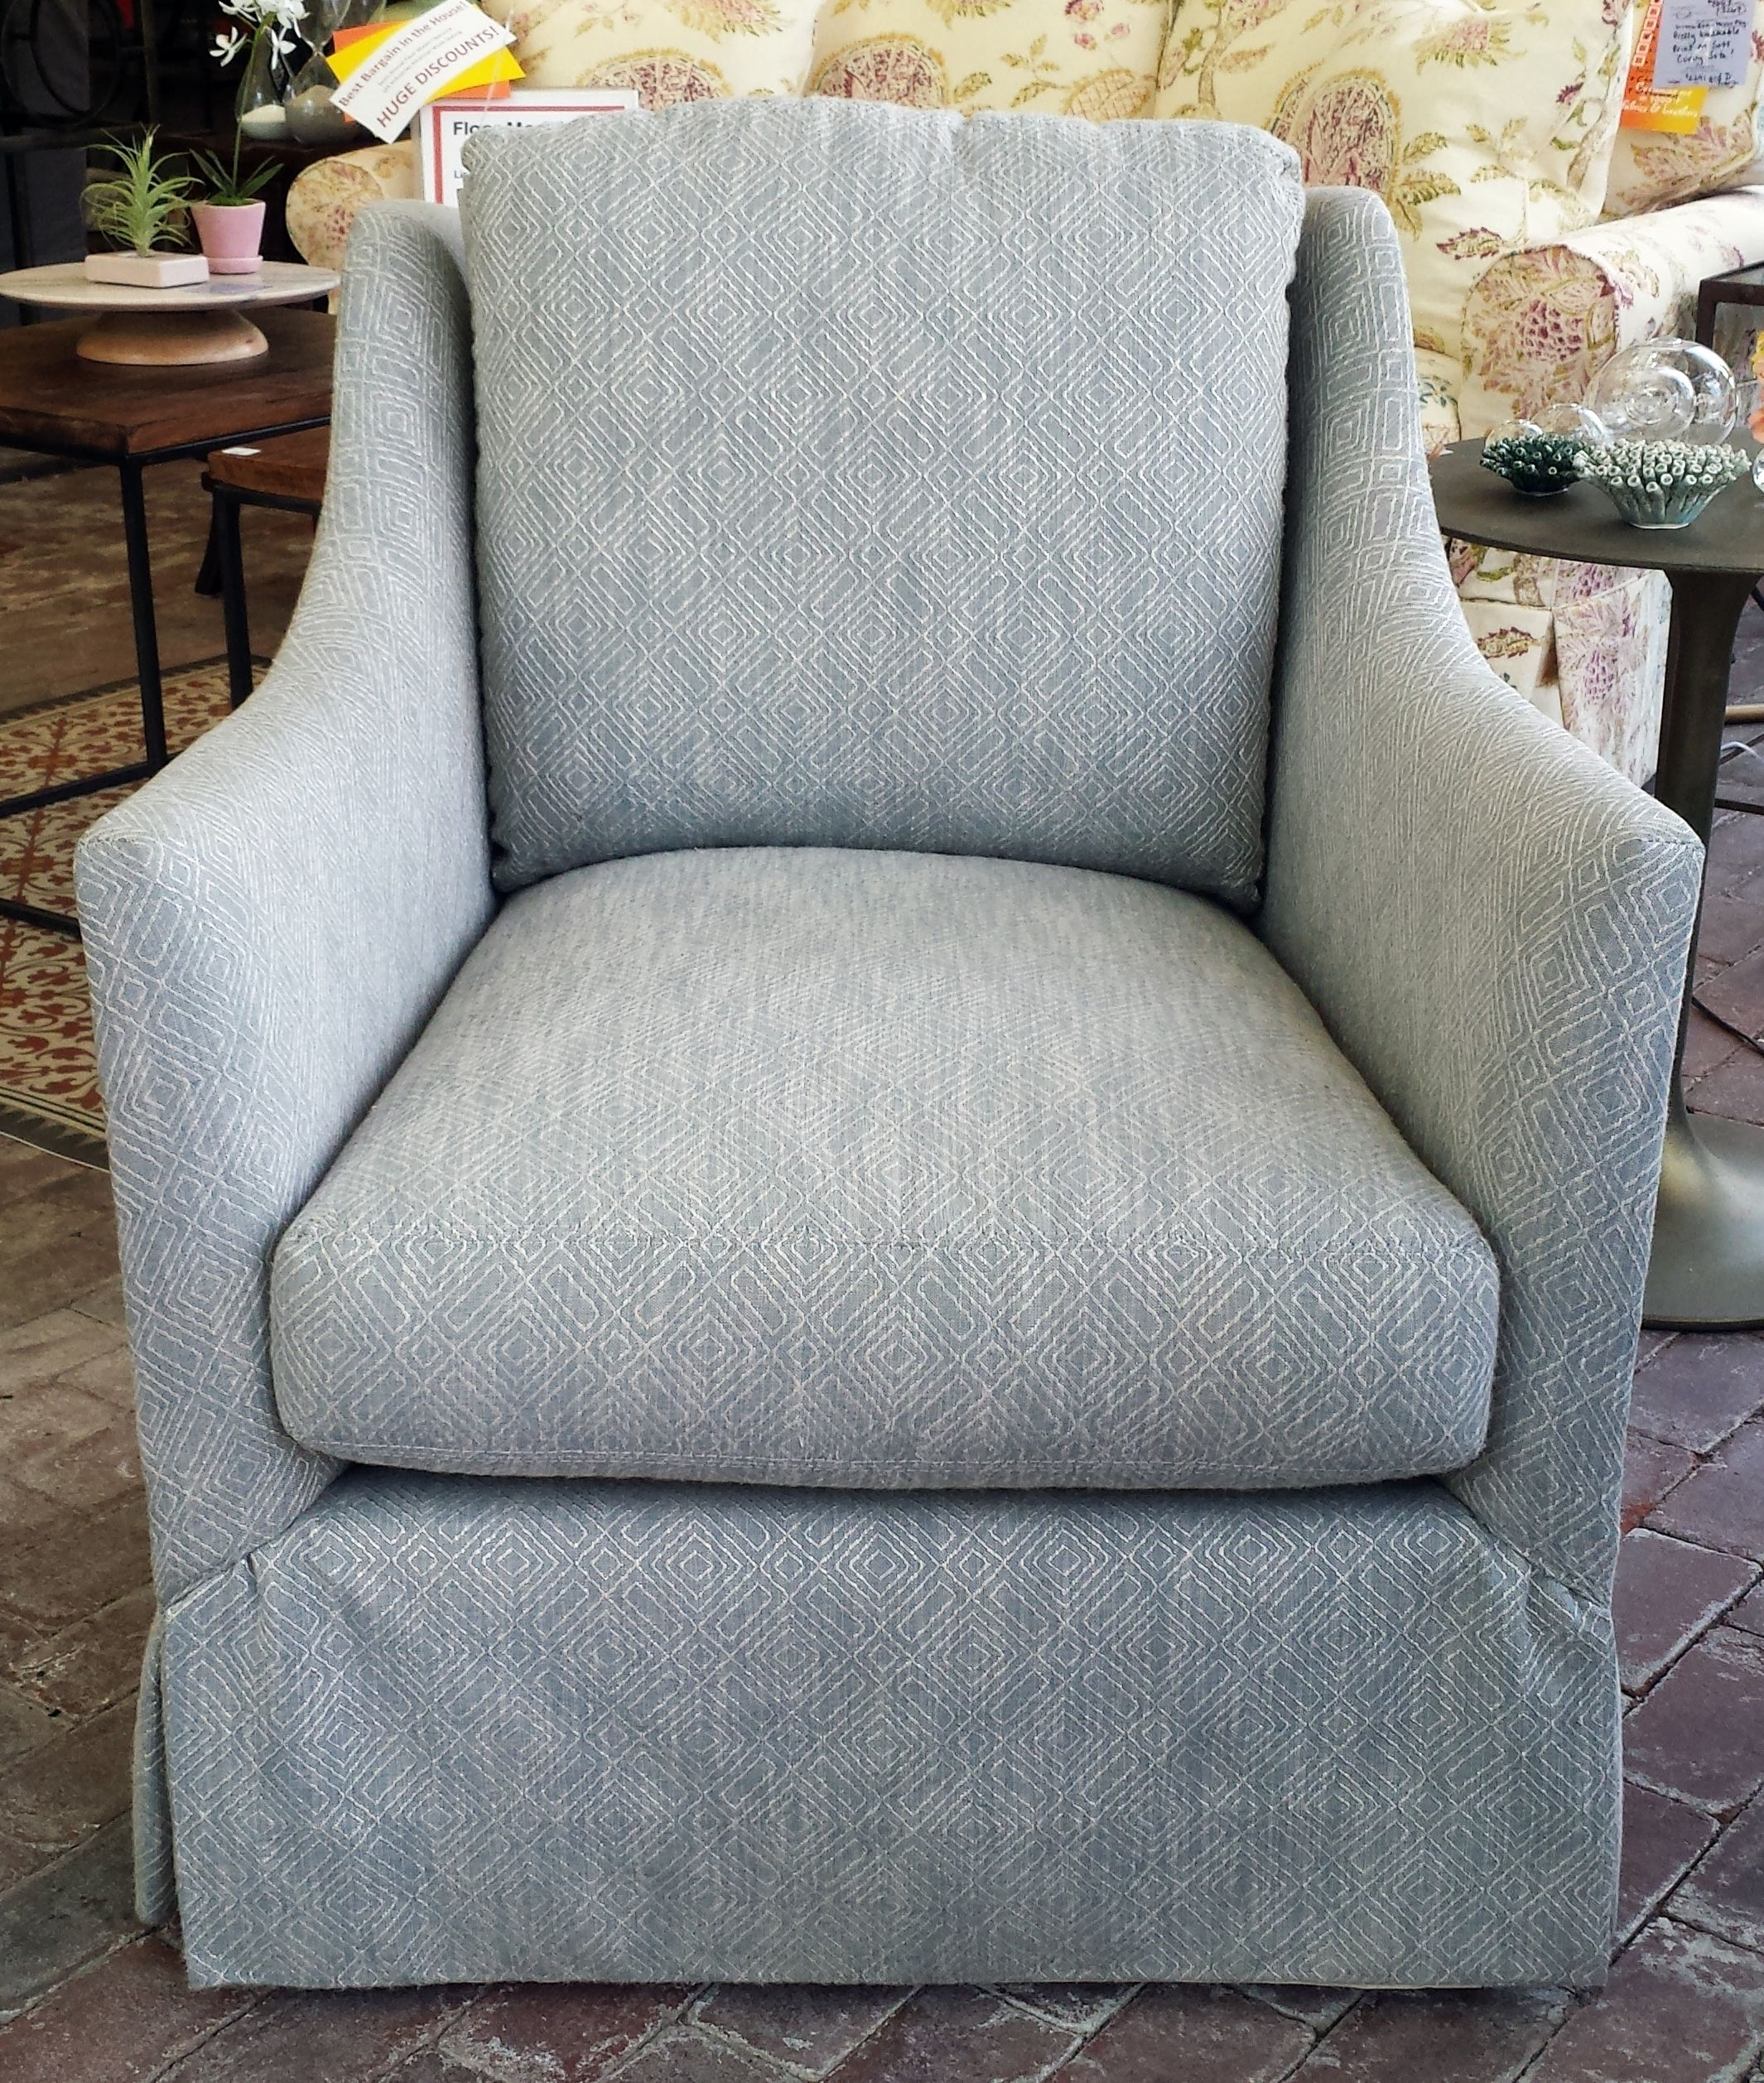 Lee Industries 3821 01 Swivel Chair In Metric Ocean This Sweet Little